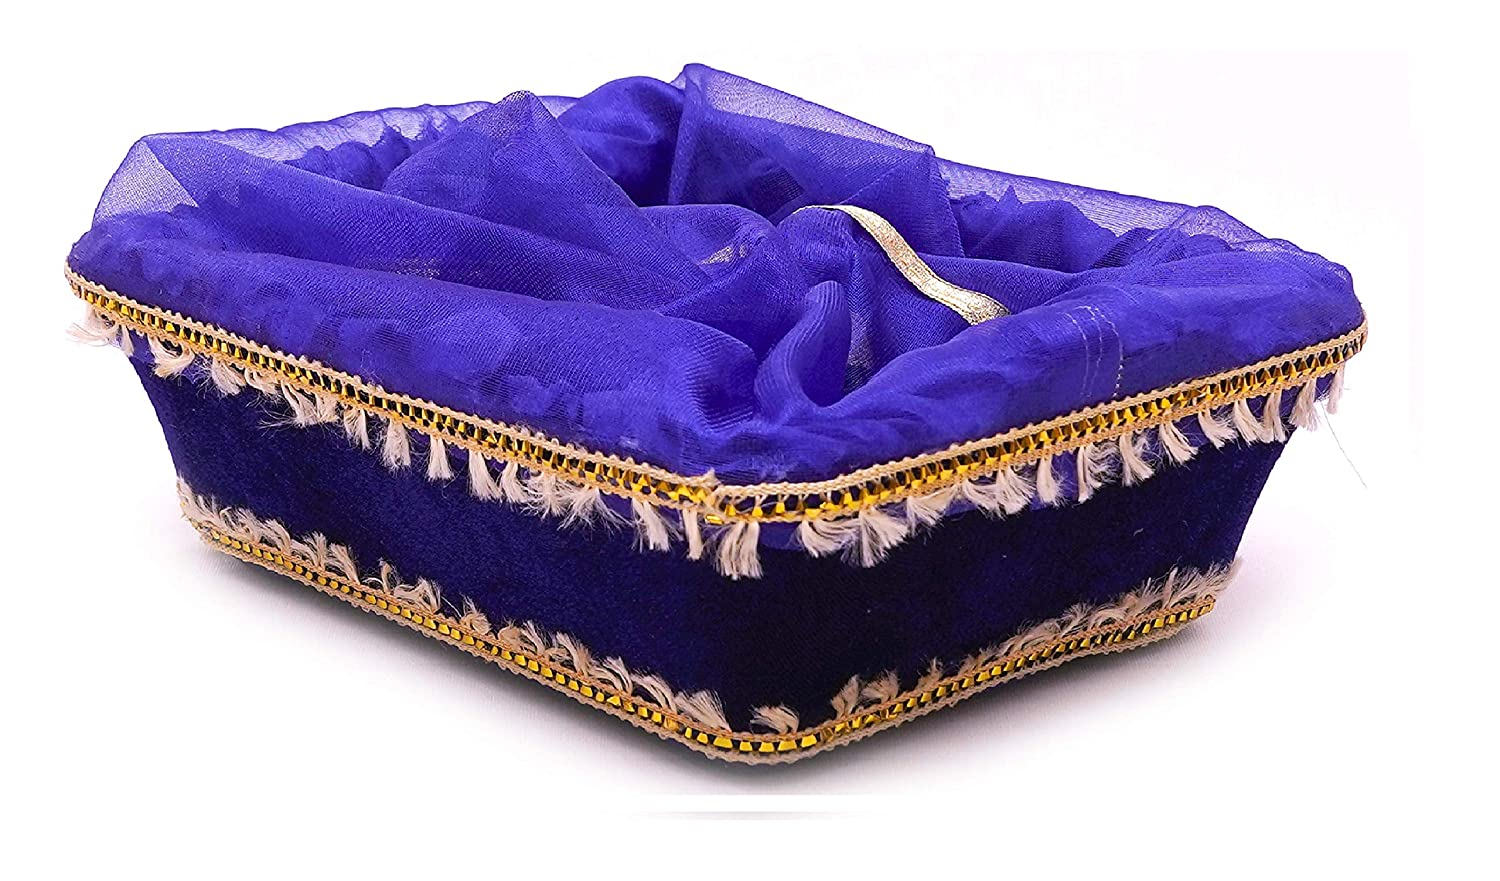 Buy Grownex Royal Blue Fancy Baskets For Baby Shower Shagun Gift Hamper Hotel Room Hampers Size 11 X 9 X 3 Inches Set Of 2 Baskets Online At Low Prices In India Amazon In